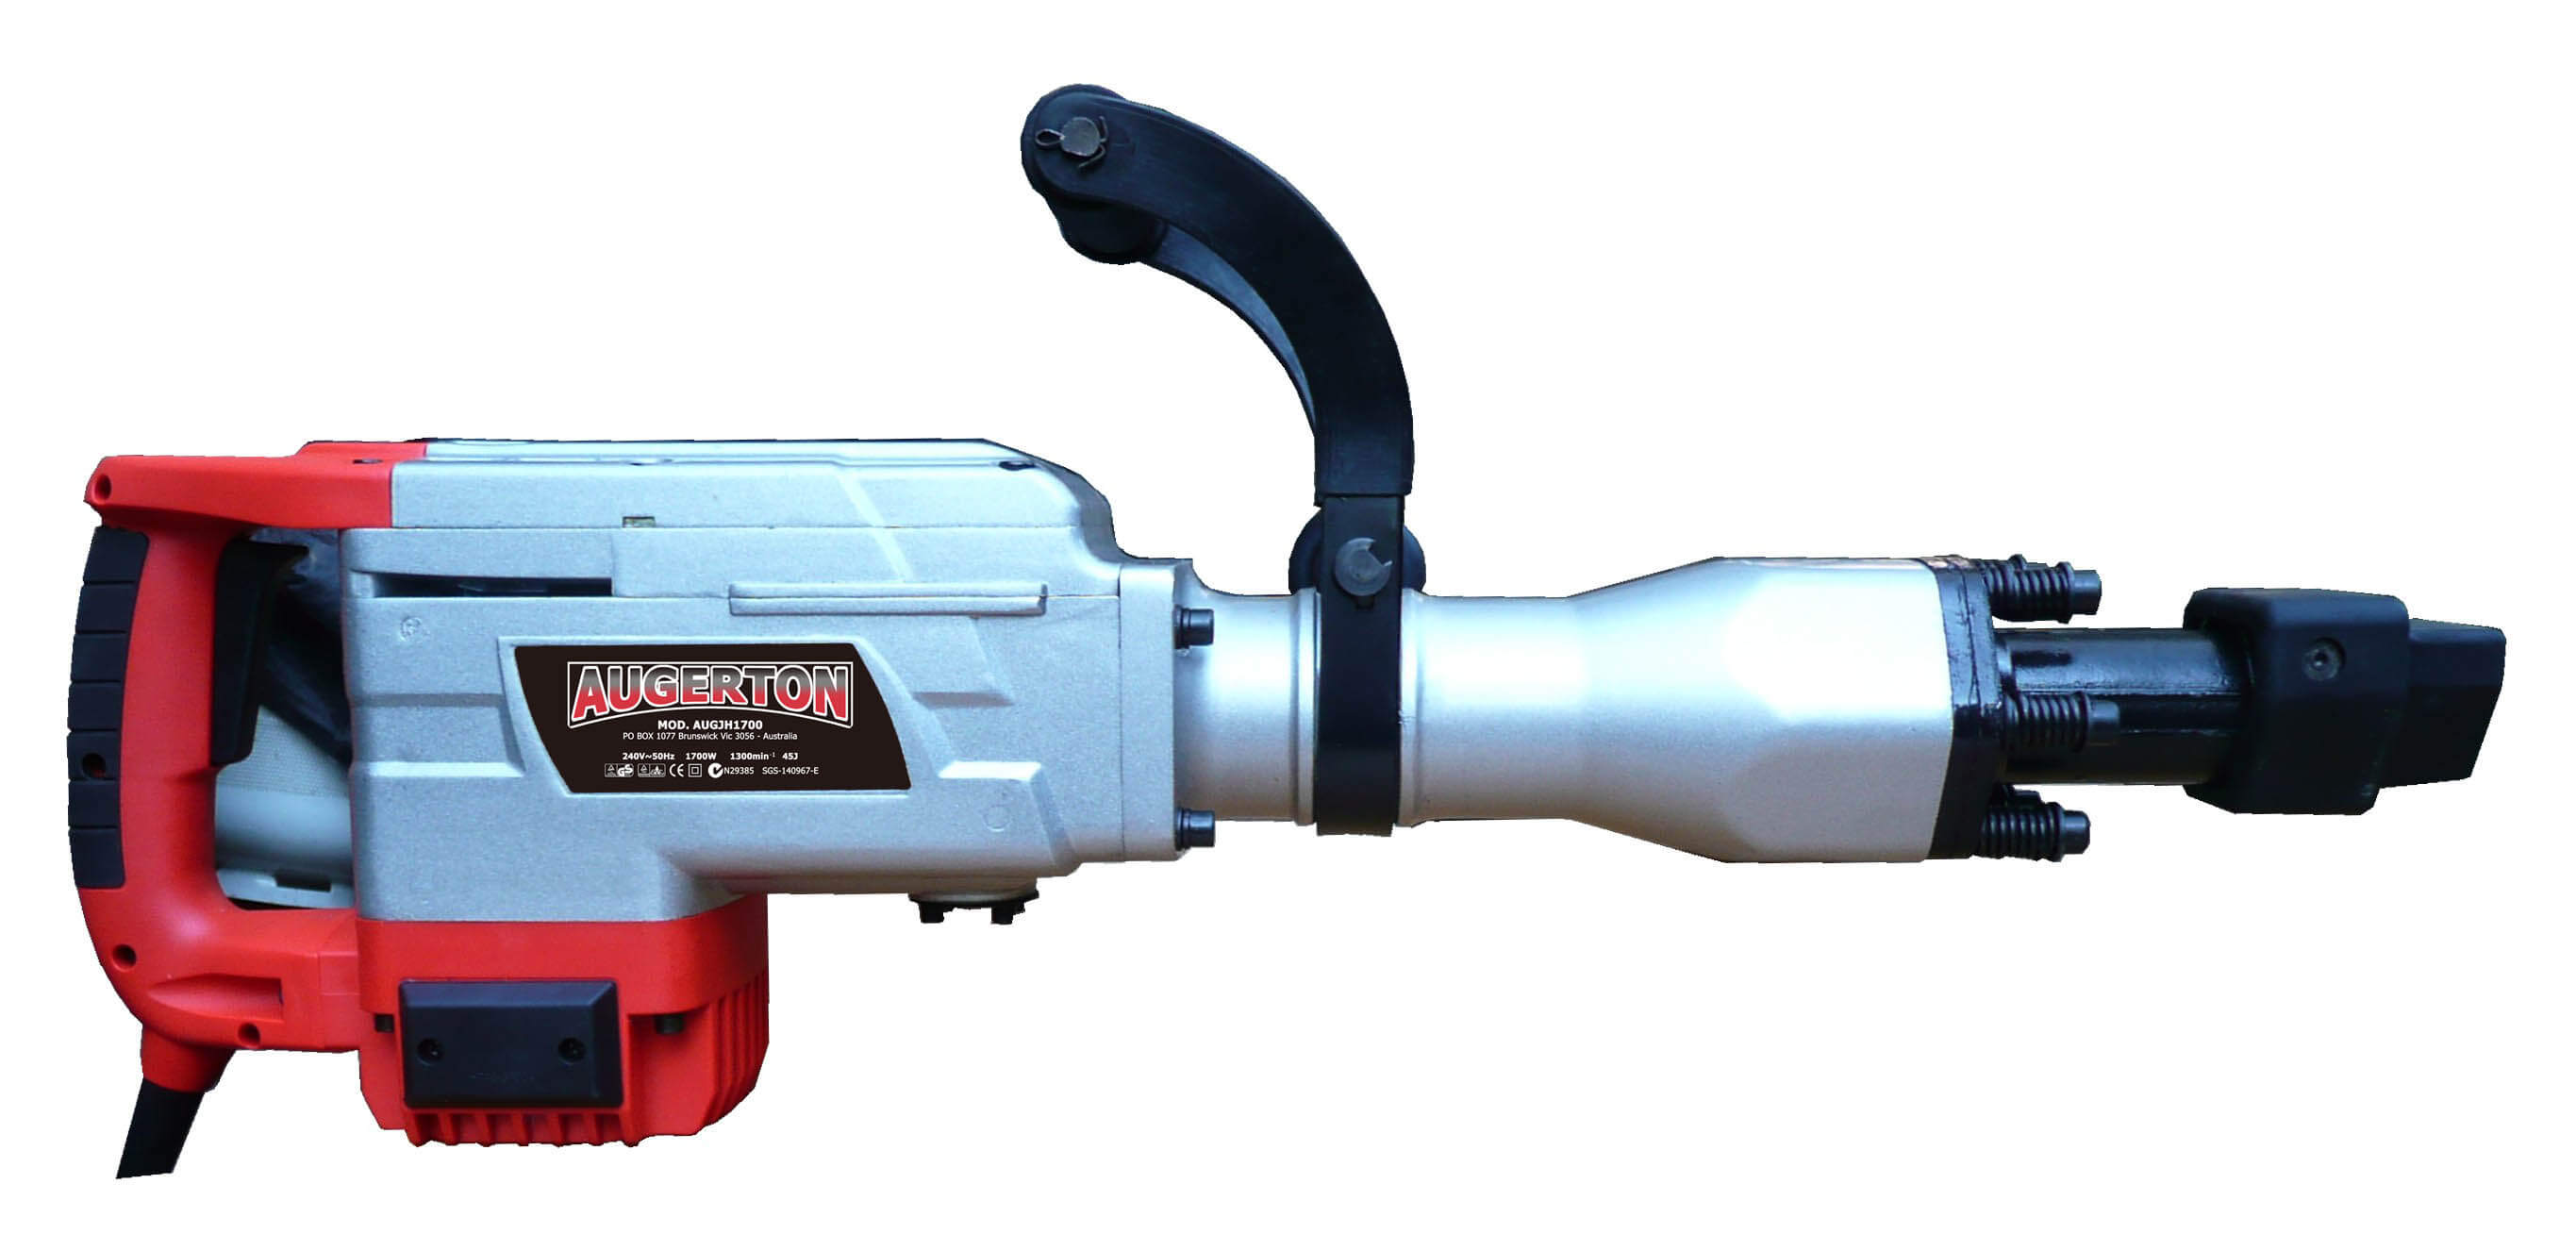 Augerton 1700w Jack Hammer With 2 Chisels Amp Clay Spade